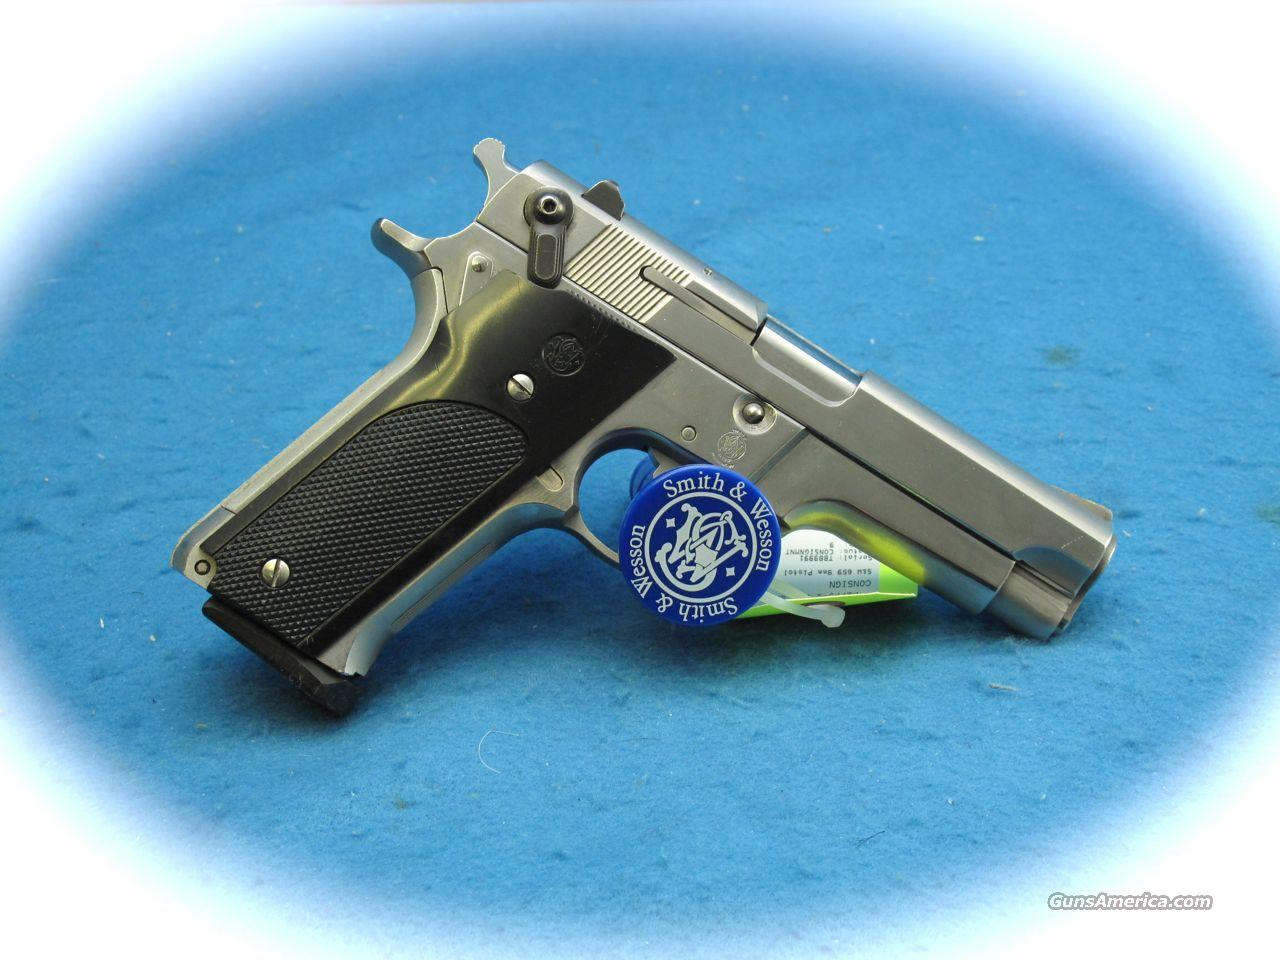 Smith & Wesson Model 659 9mm Semi Auto Pistol **USED**  Guns > Pistols > Smith & Wesson Pistols - Autos > Steel Frame